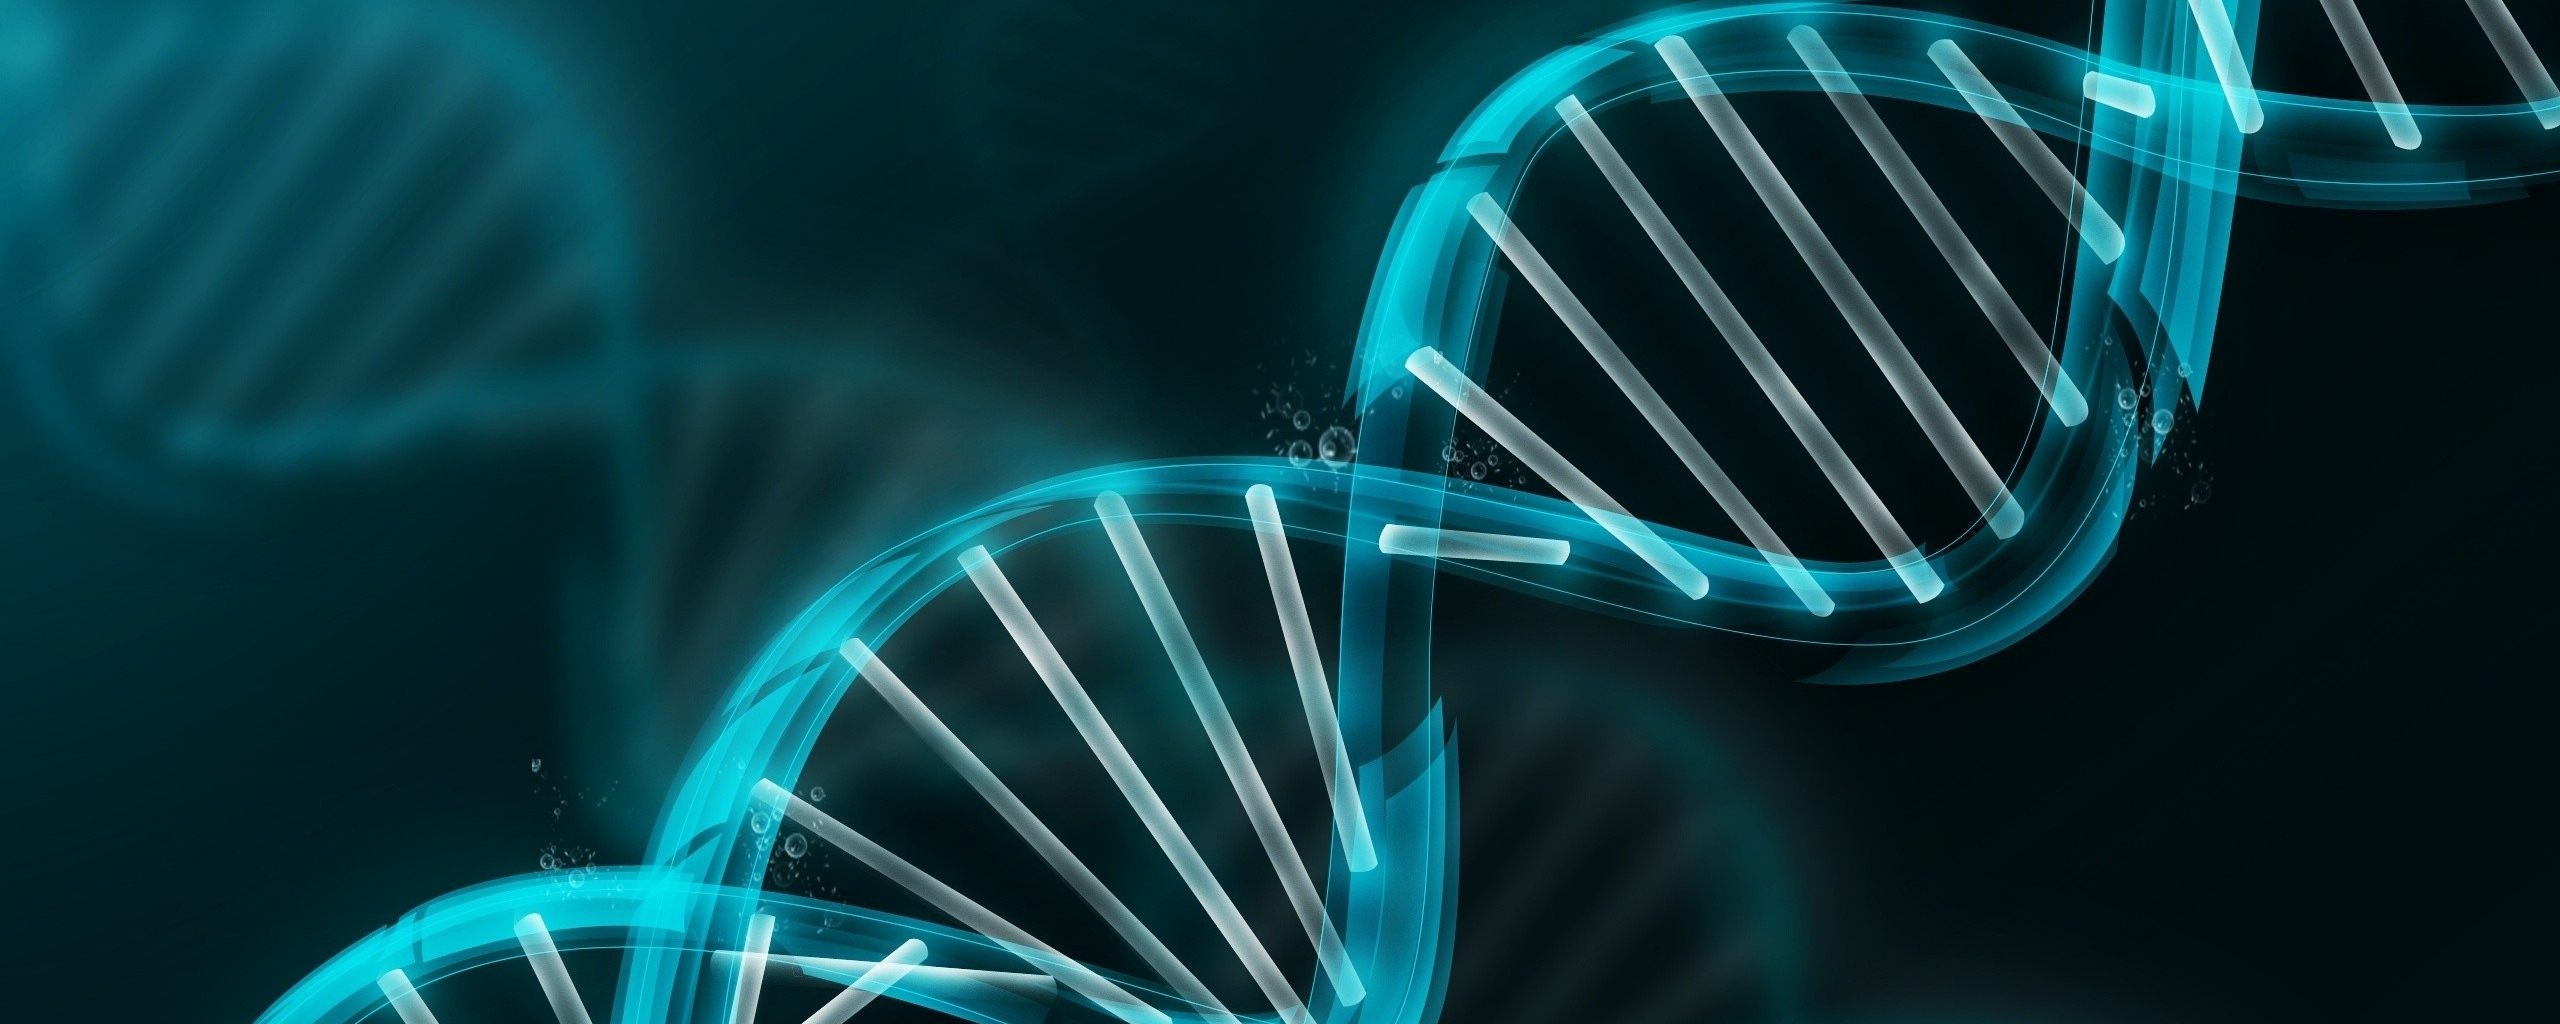 dna_spiral_dark_lines_figure_38174_2560x1024